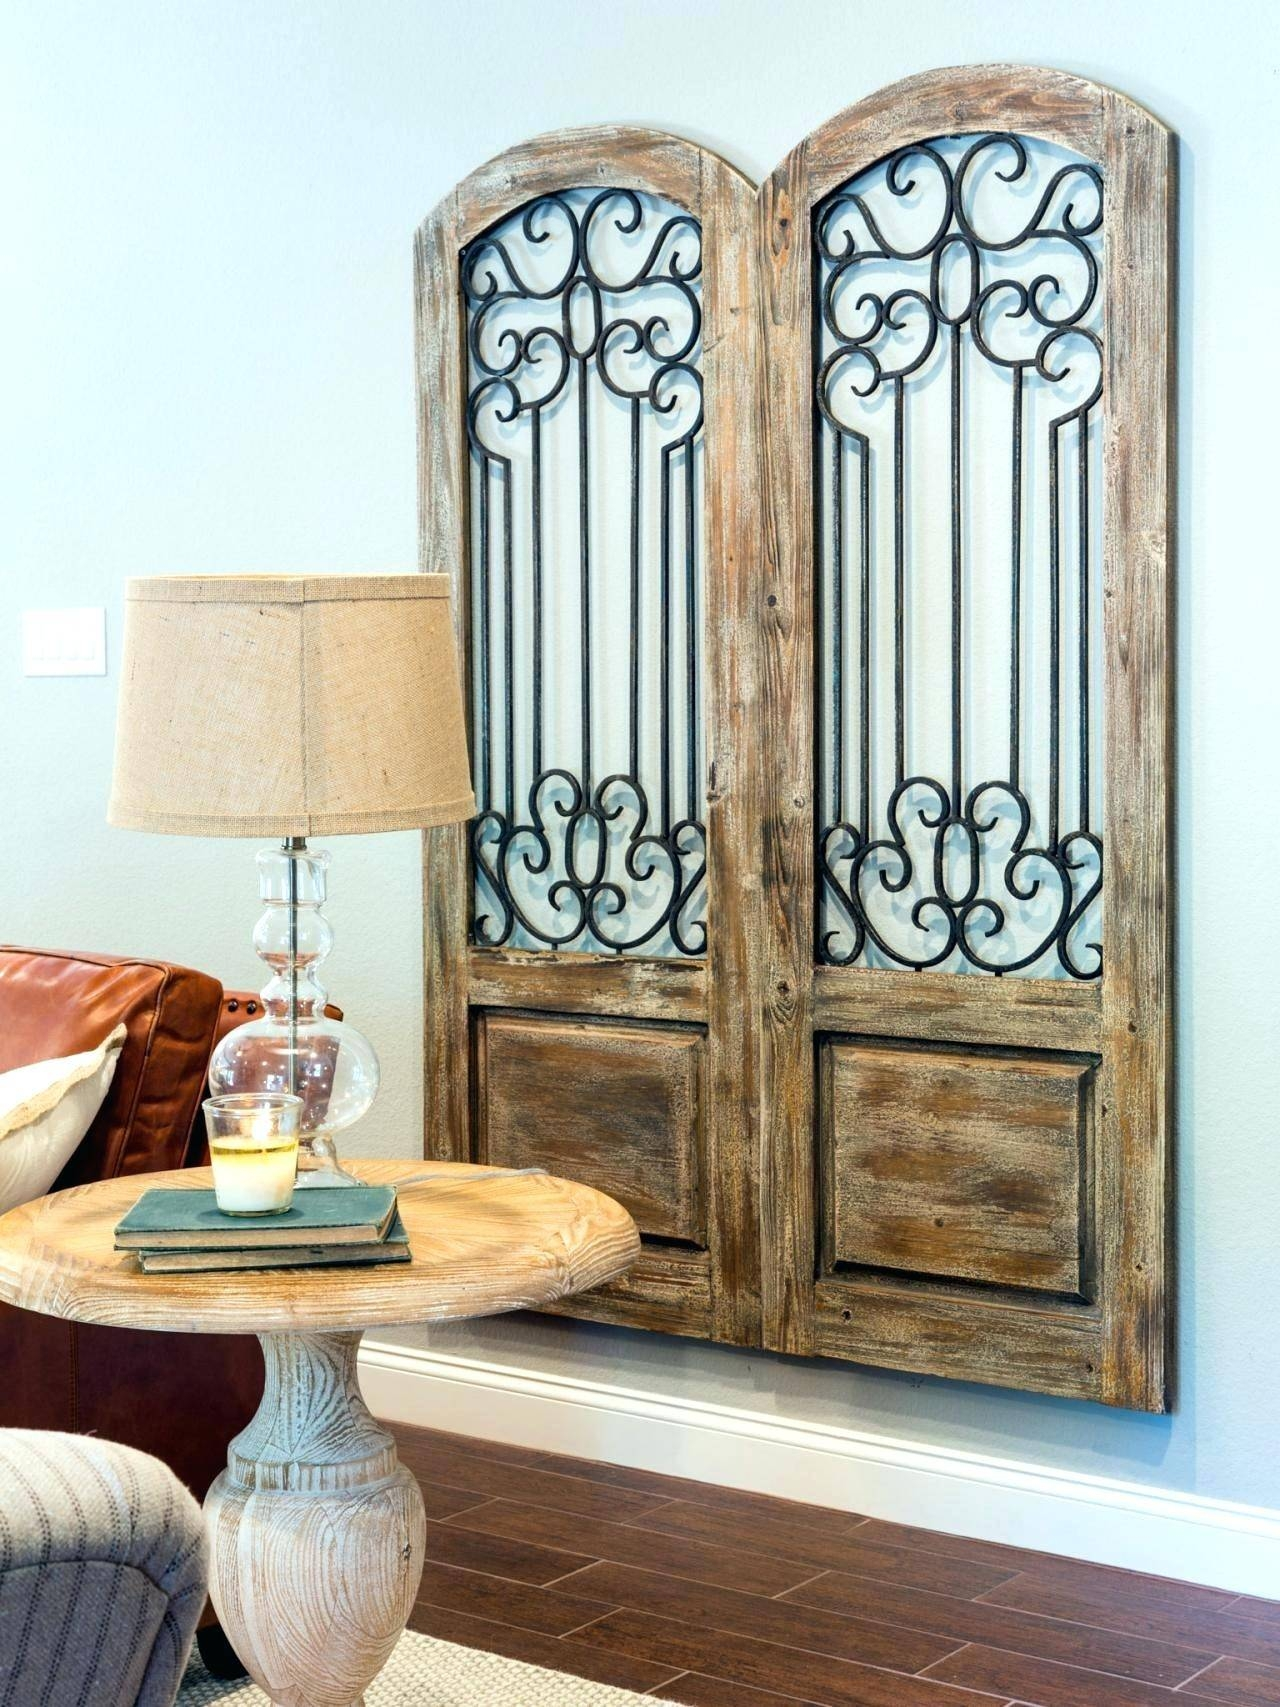 Articles With Faux Wrought Iron Wall Art For Under $5 Tag Regarding Most Current Faux Wrought Iron Wall Art (View 15 of 30)